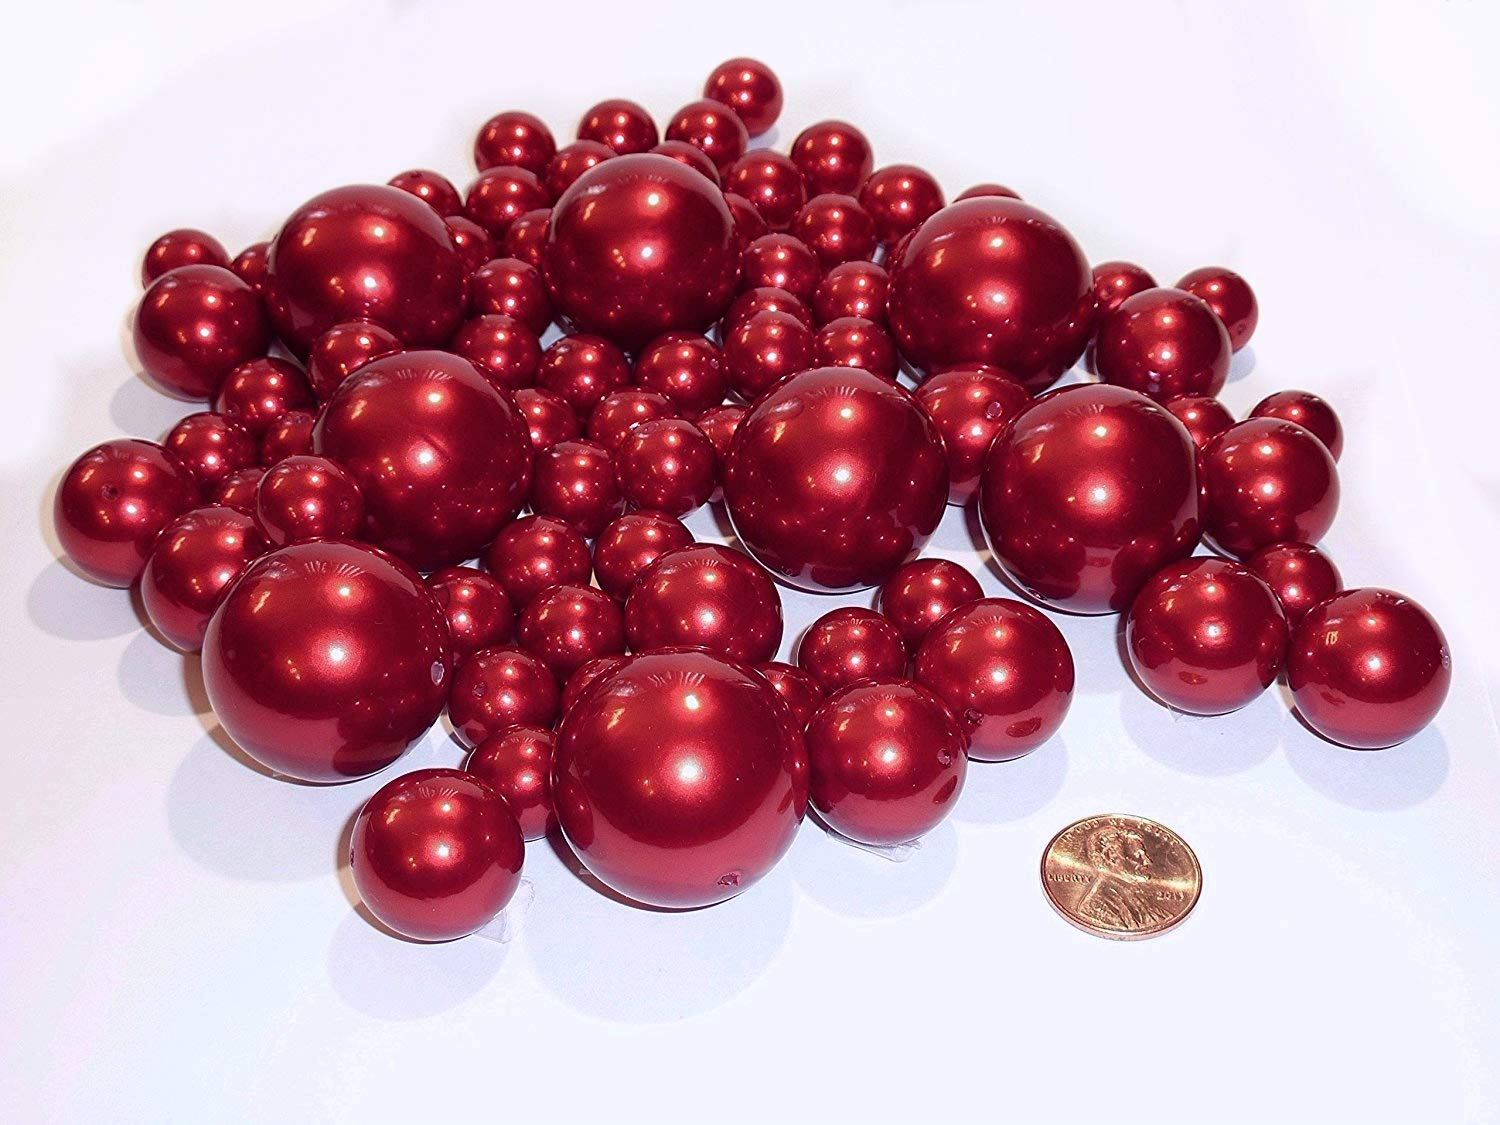 All Red Pearls - Jumbo and Assorted Sizes Vase Fillers for Decorating Centerpieces - To Float the Pearls - Order with Transparent Water Gels by Vase Pearlfection